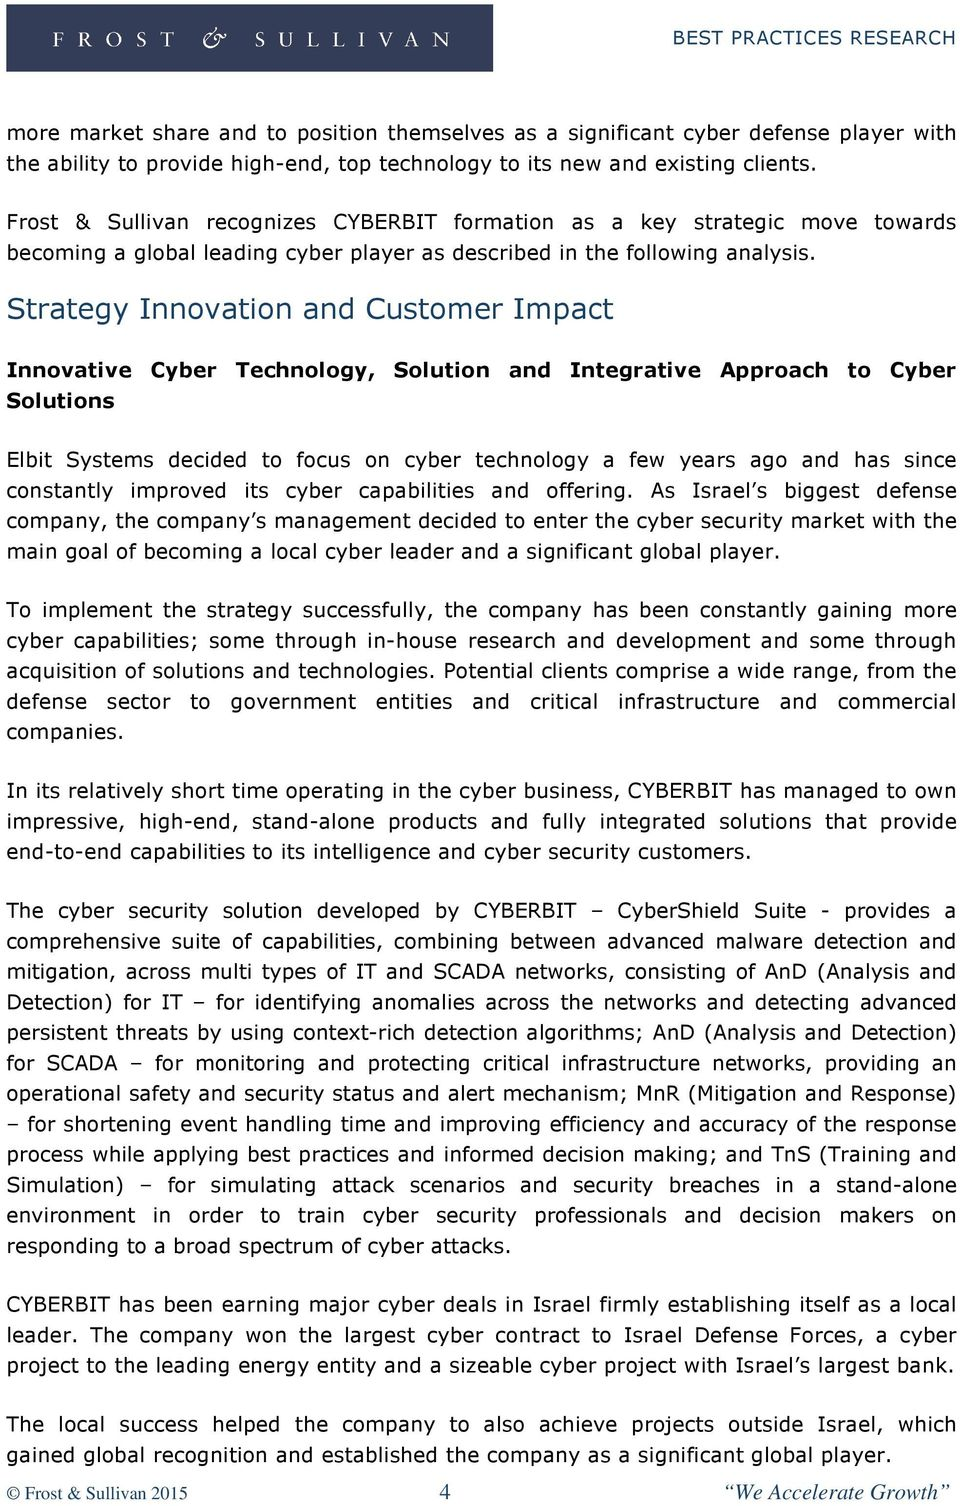 Strategy Innovation and Customer Impact Innovative Cyber Technology, Solution and Integrative Approach to Cyber Solutions Elbit Systems decided to focus on cyber technology a few years ago and has